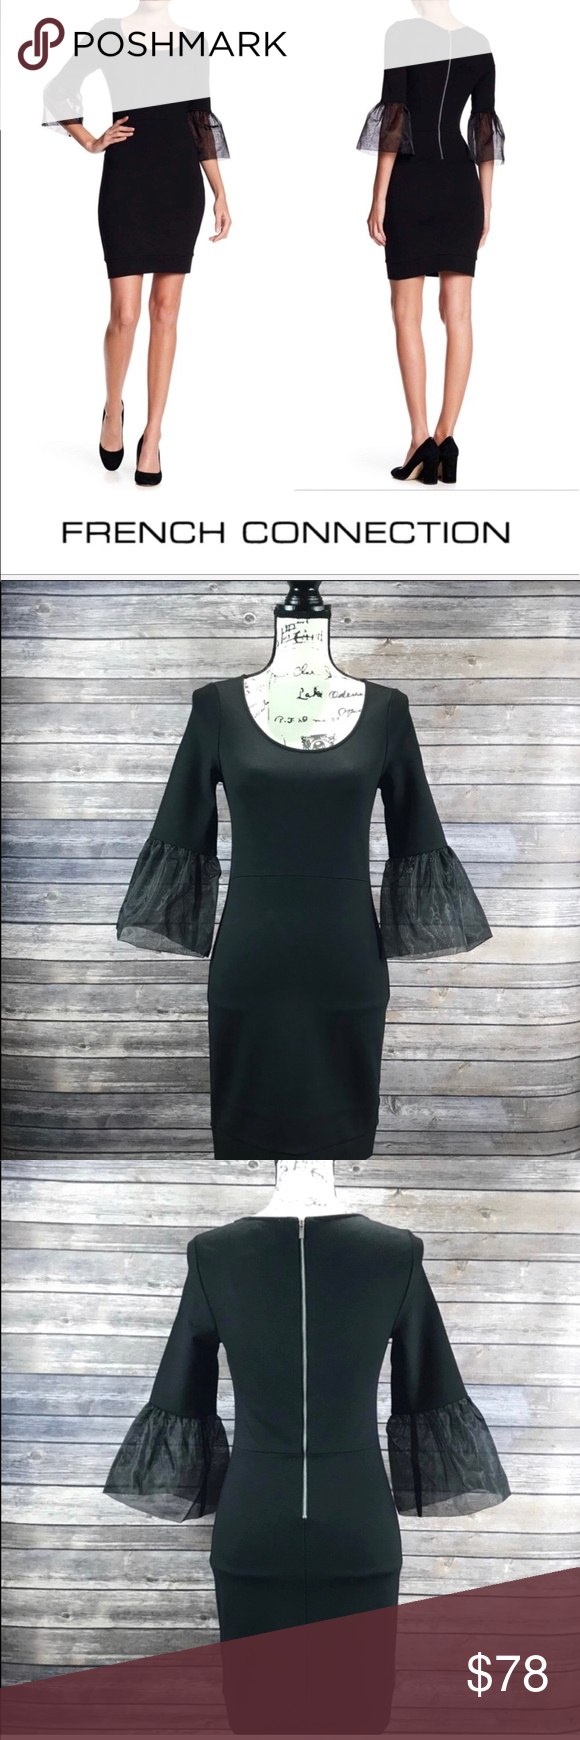 88ba9b4548b NEW French Connection Lula Bell Fitted Dress FRENCH CONNECTION Lula Bell Is  a classic little black